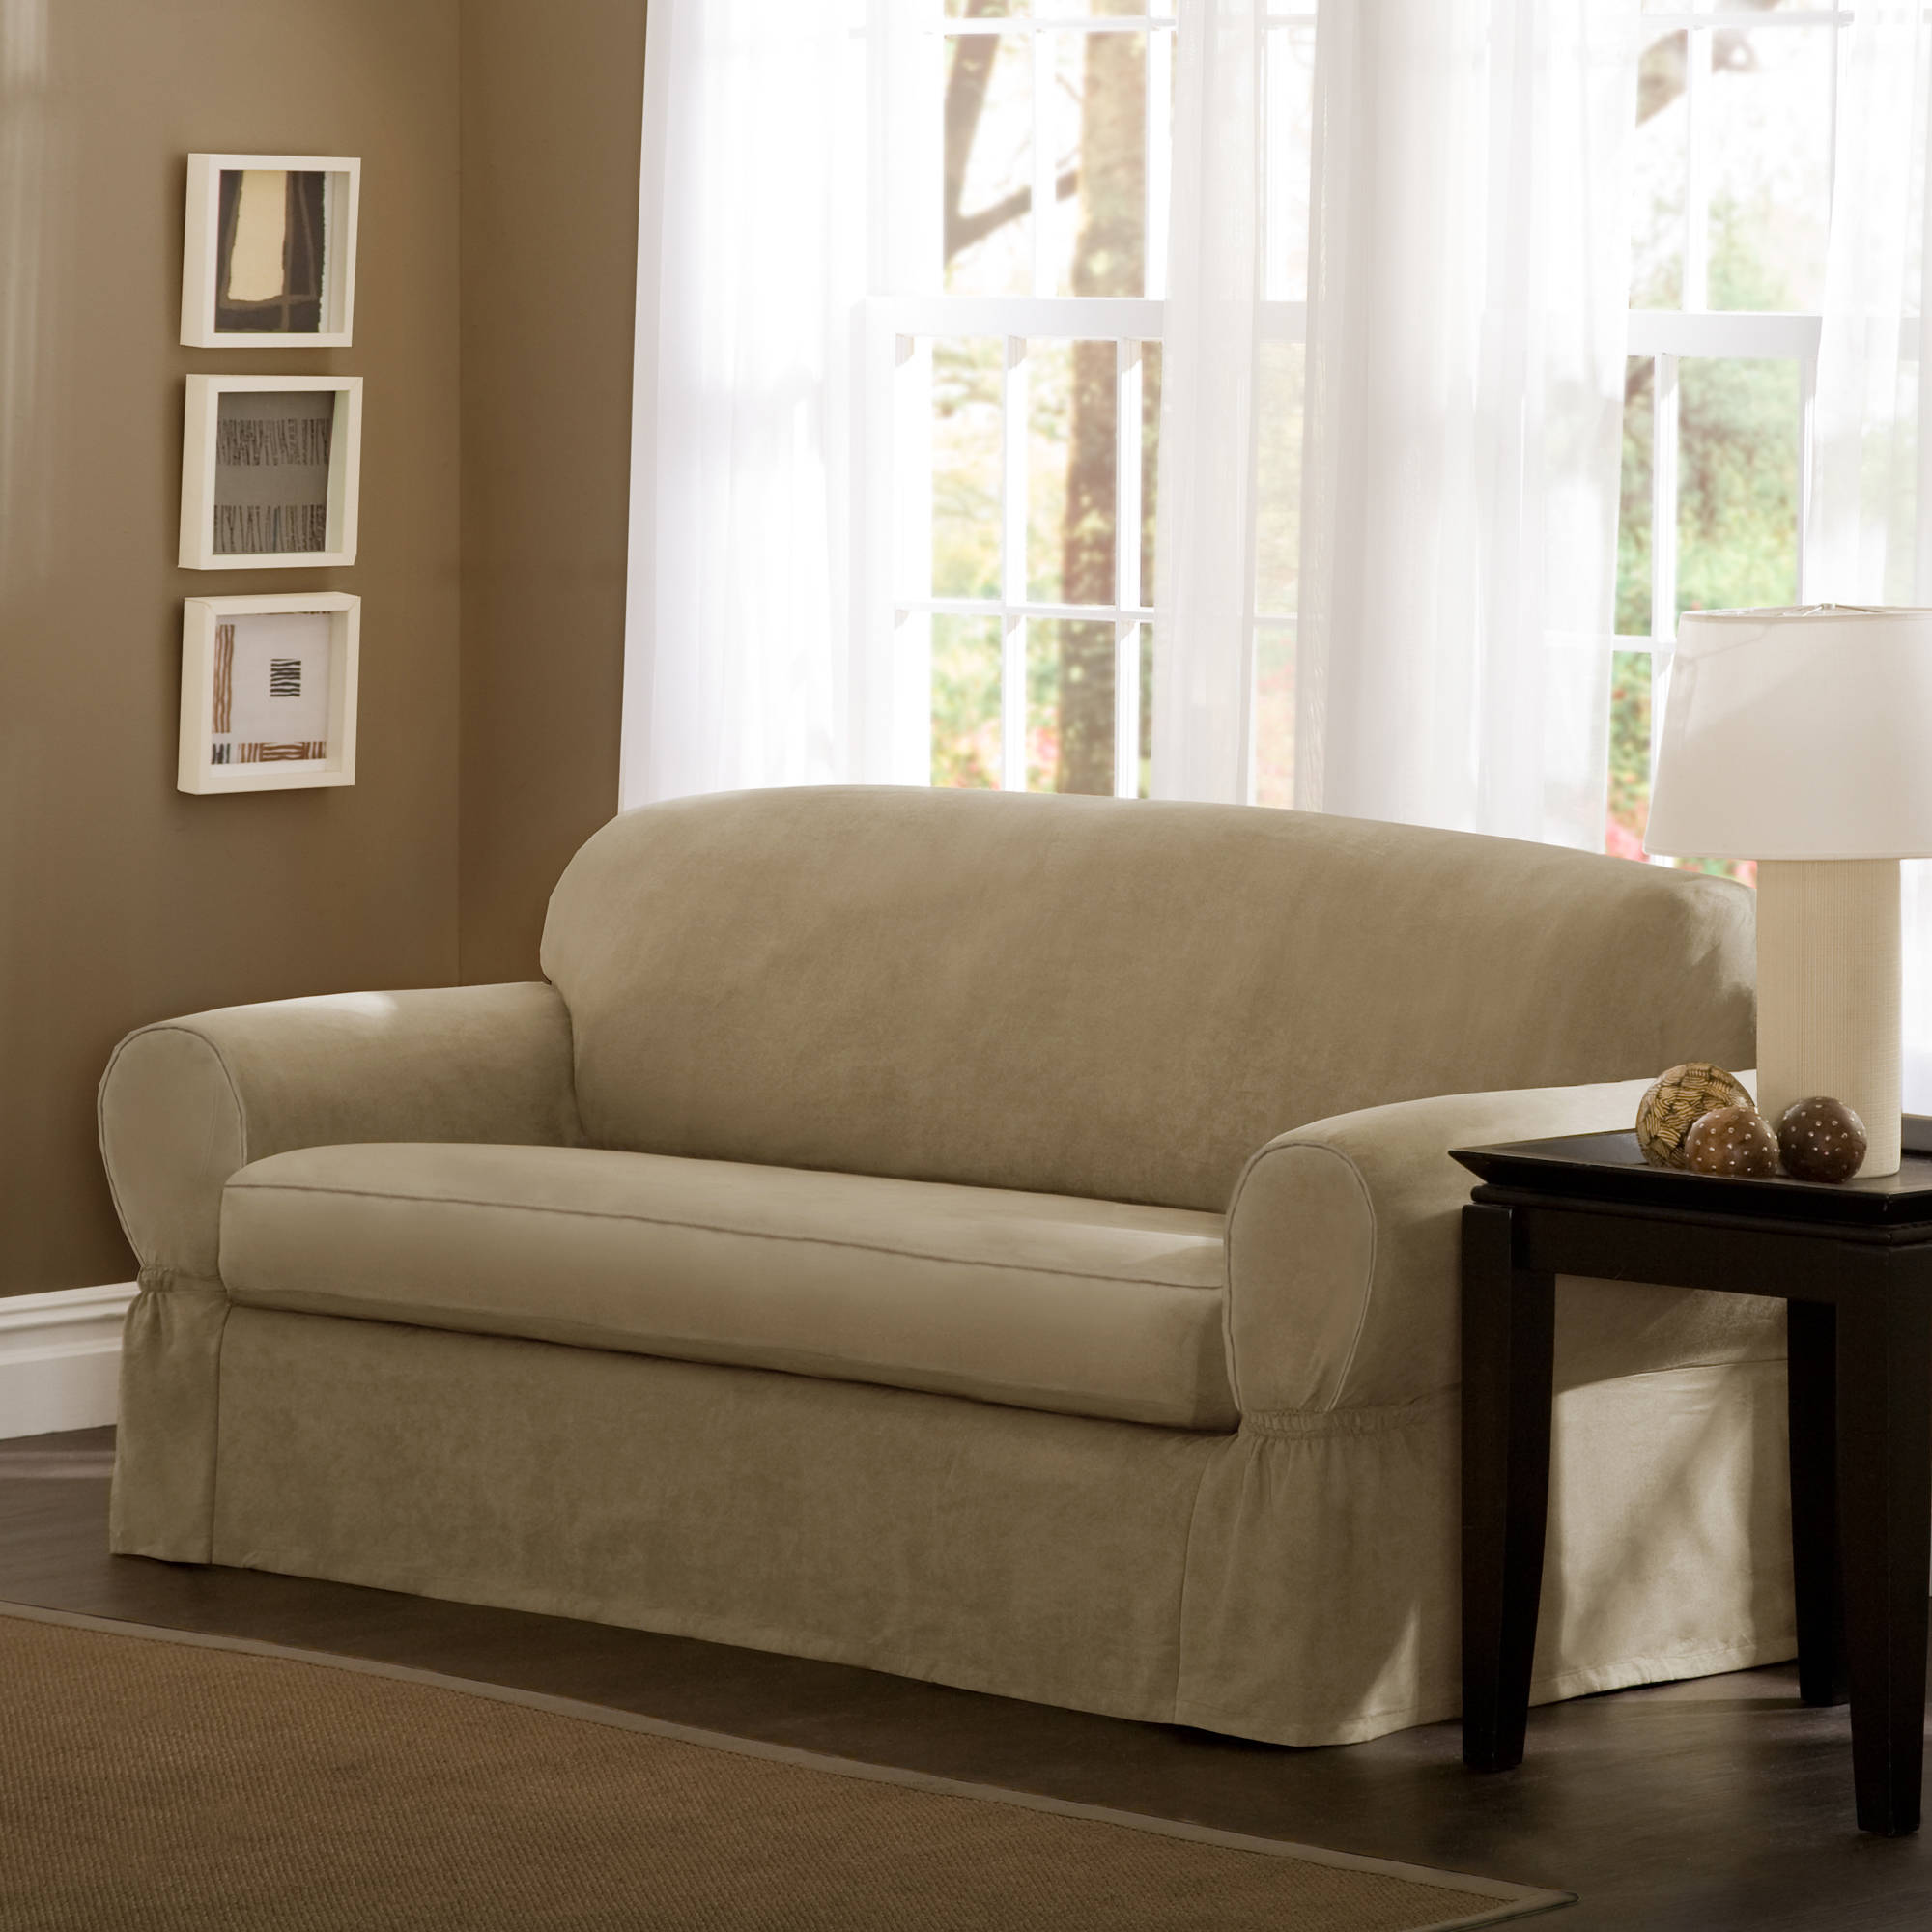 Maytex Piped Faux Suede Non Stretch 2 Piece Sofa Slipcover Ebay